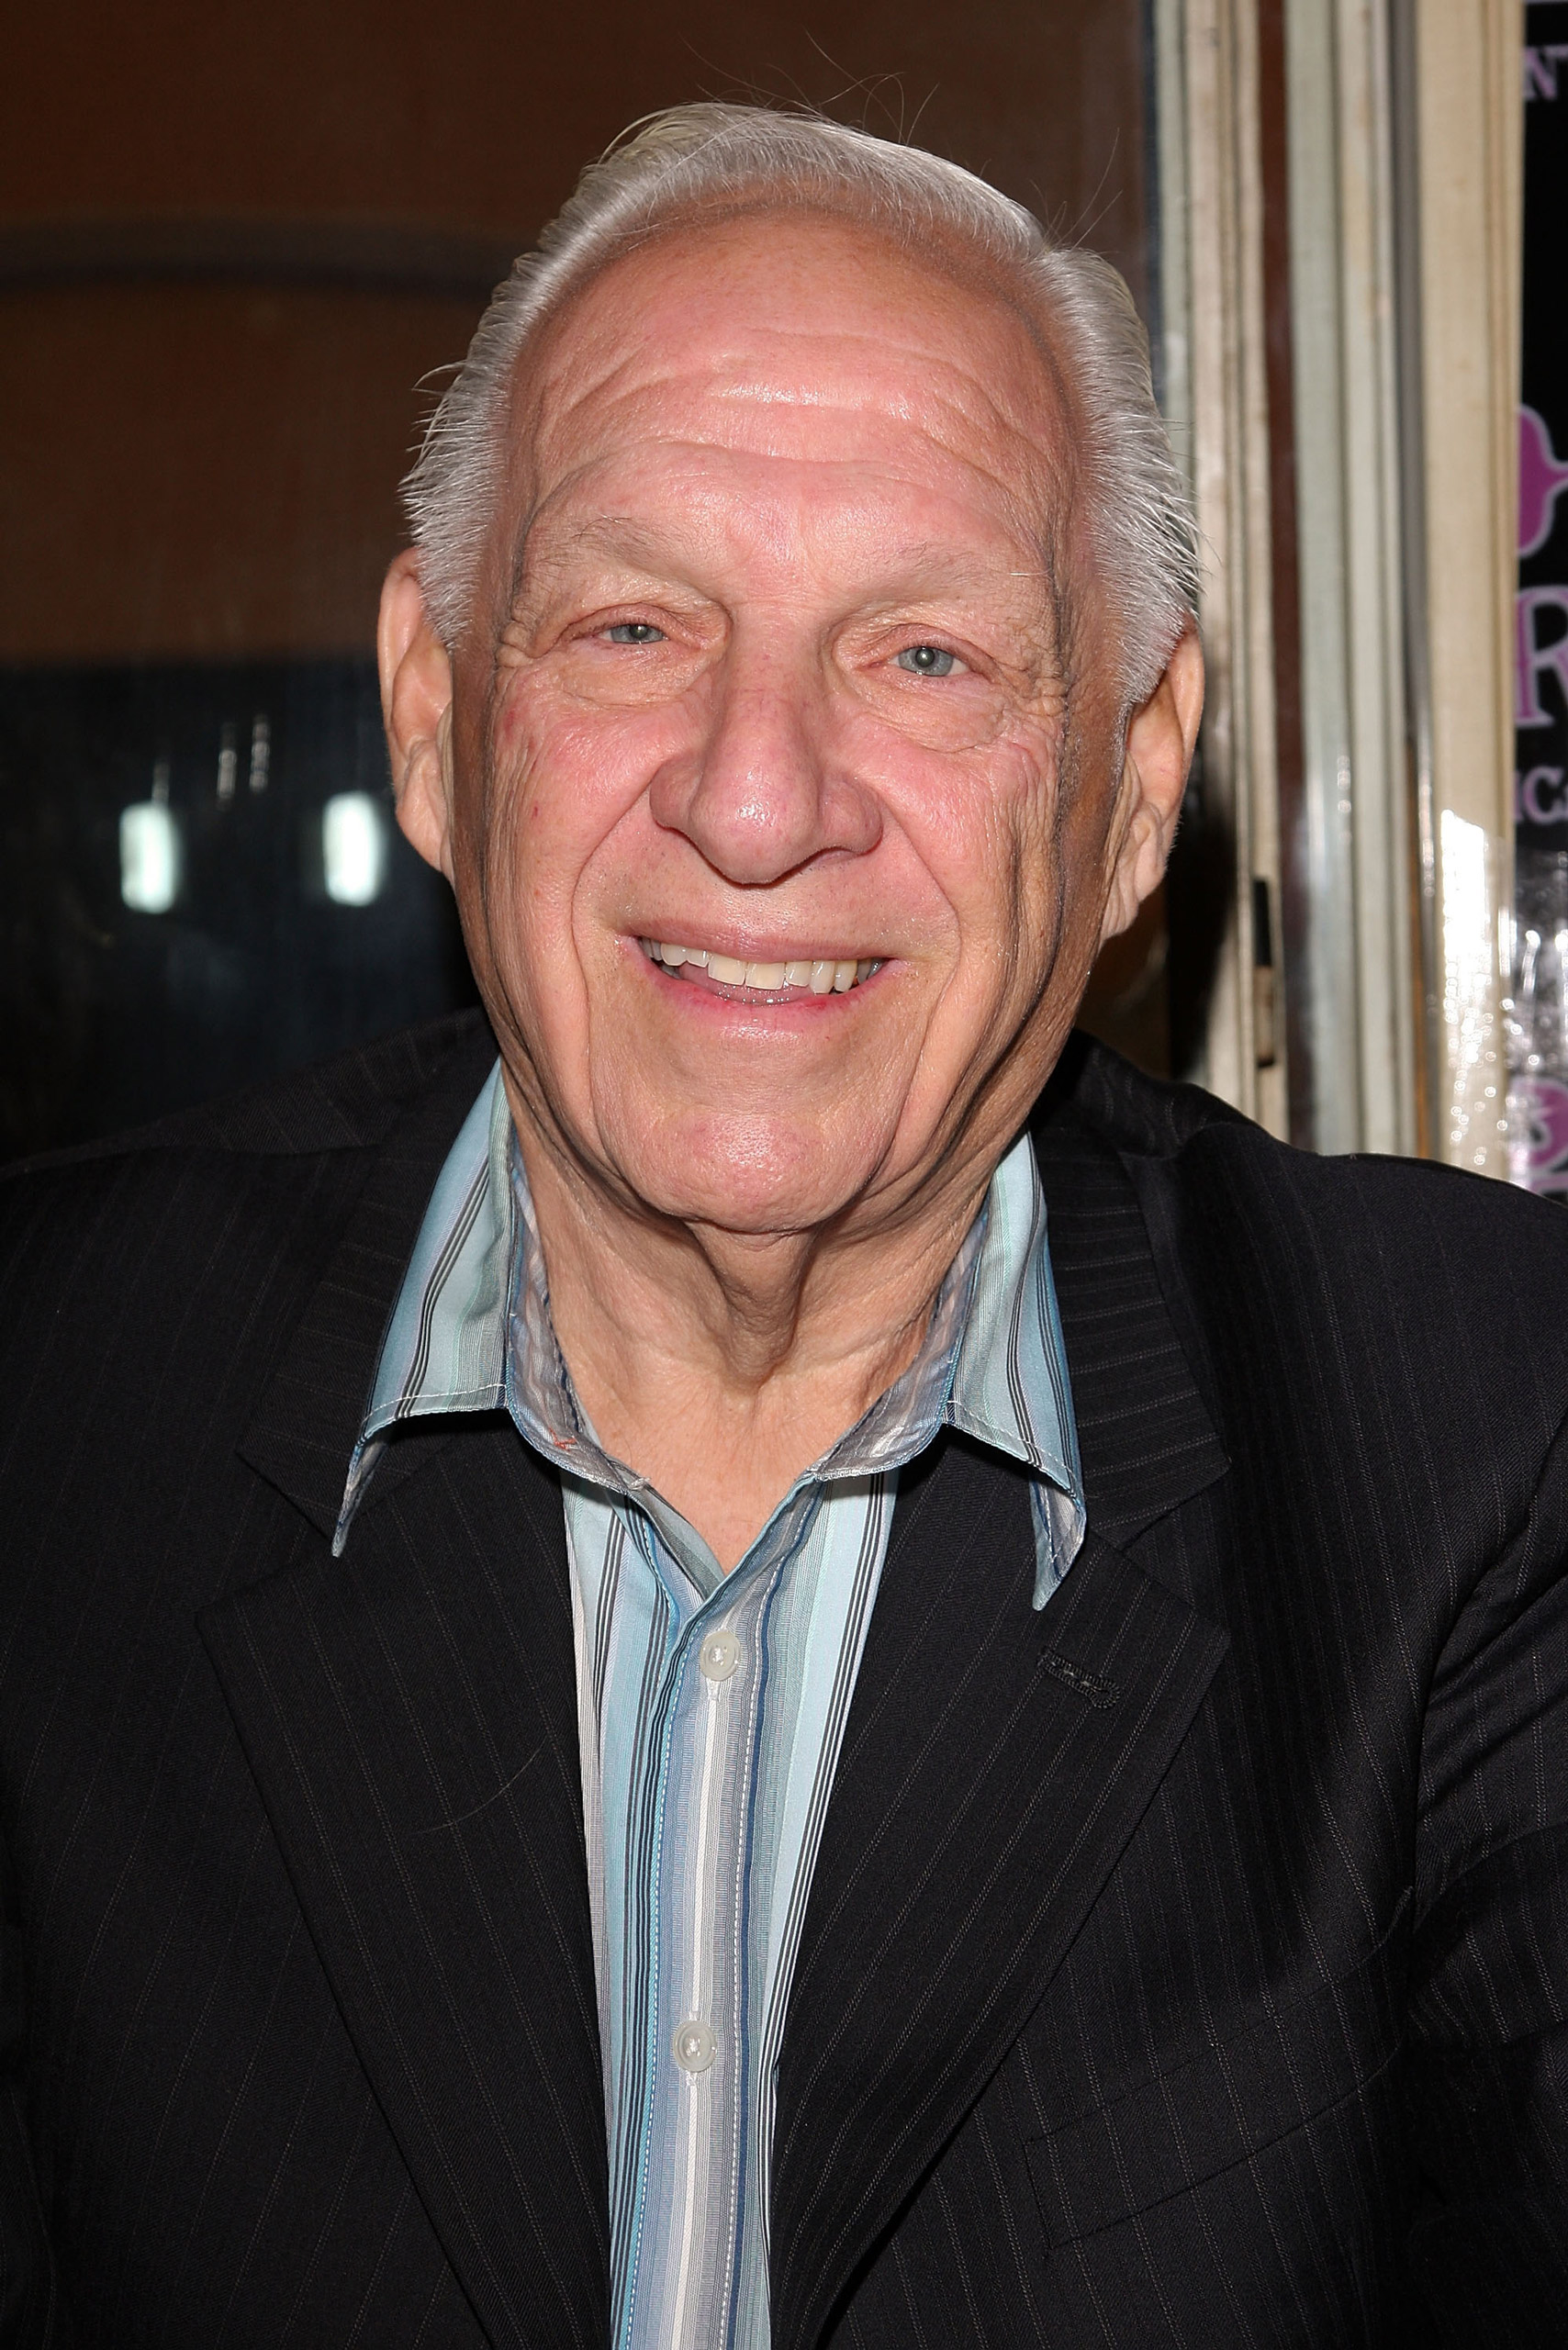 Co-founder of Ruthless Records and former N.W.A. manager Jerry Heller attends his book launch for  Ruthless: A Memoir  in Mexico City on June 13, 2008.